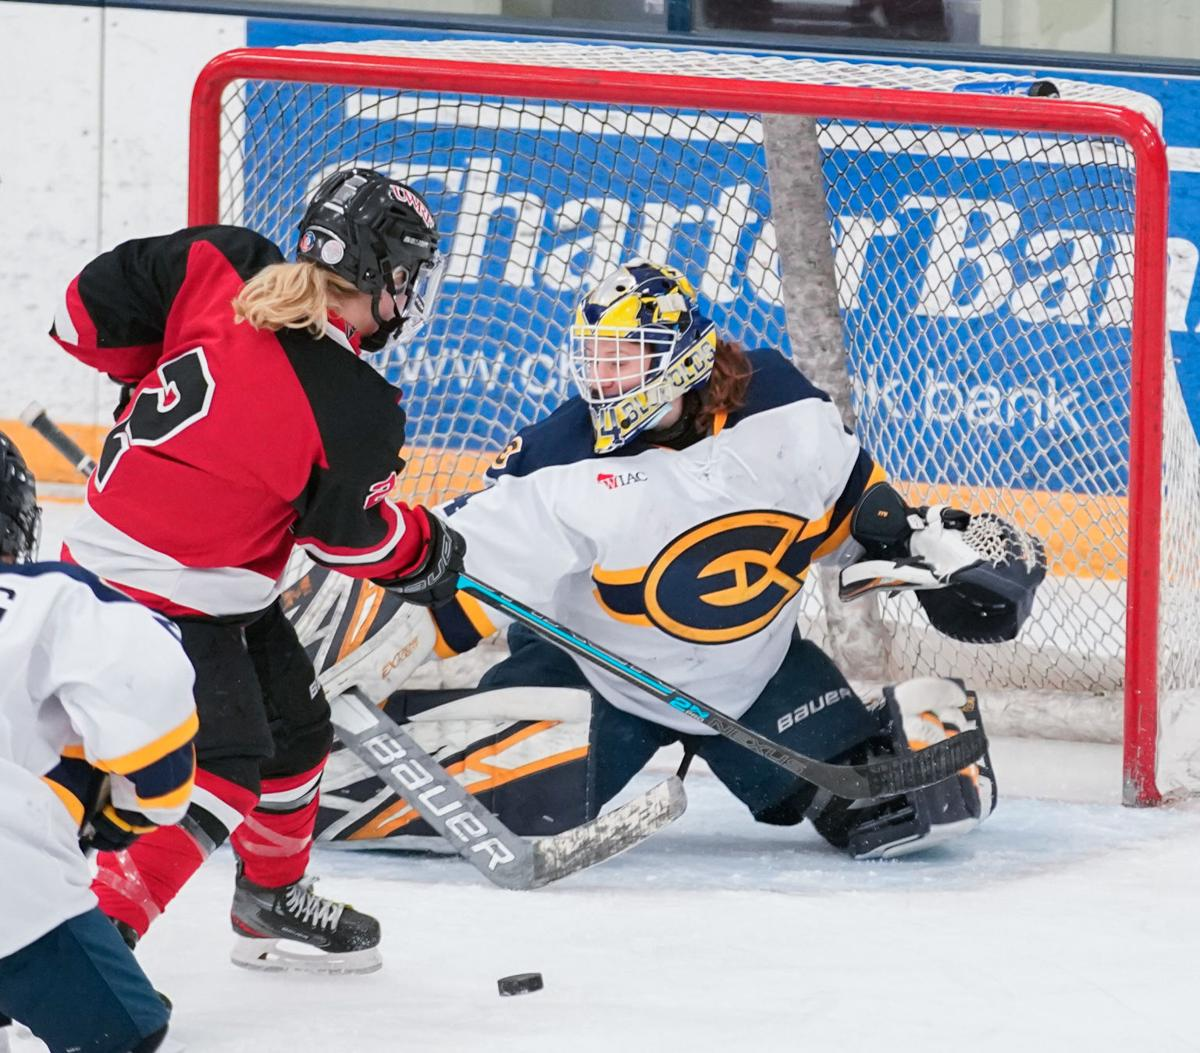 UW-River Falls at UW-Eau Claire women's hockey